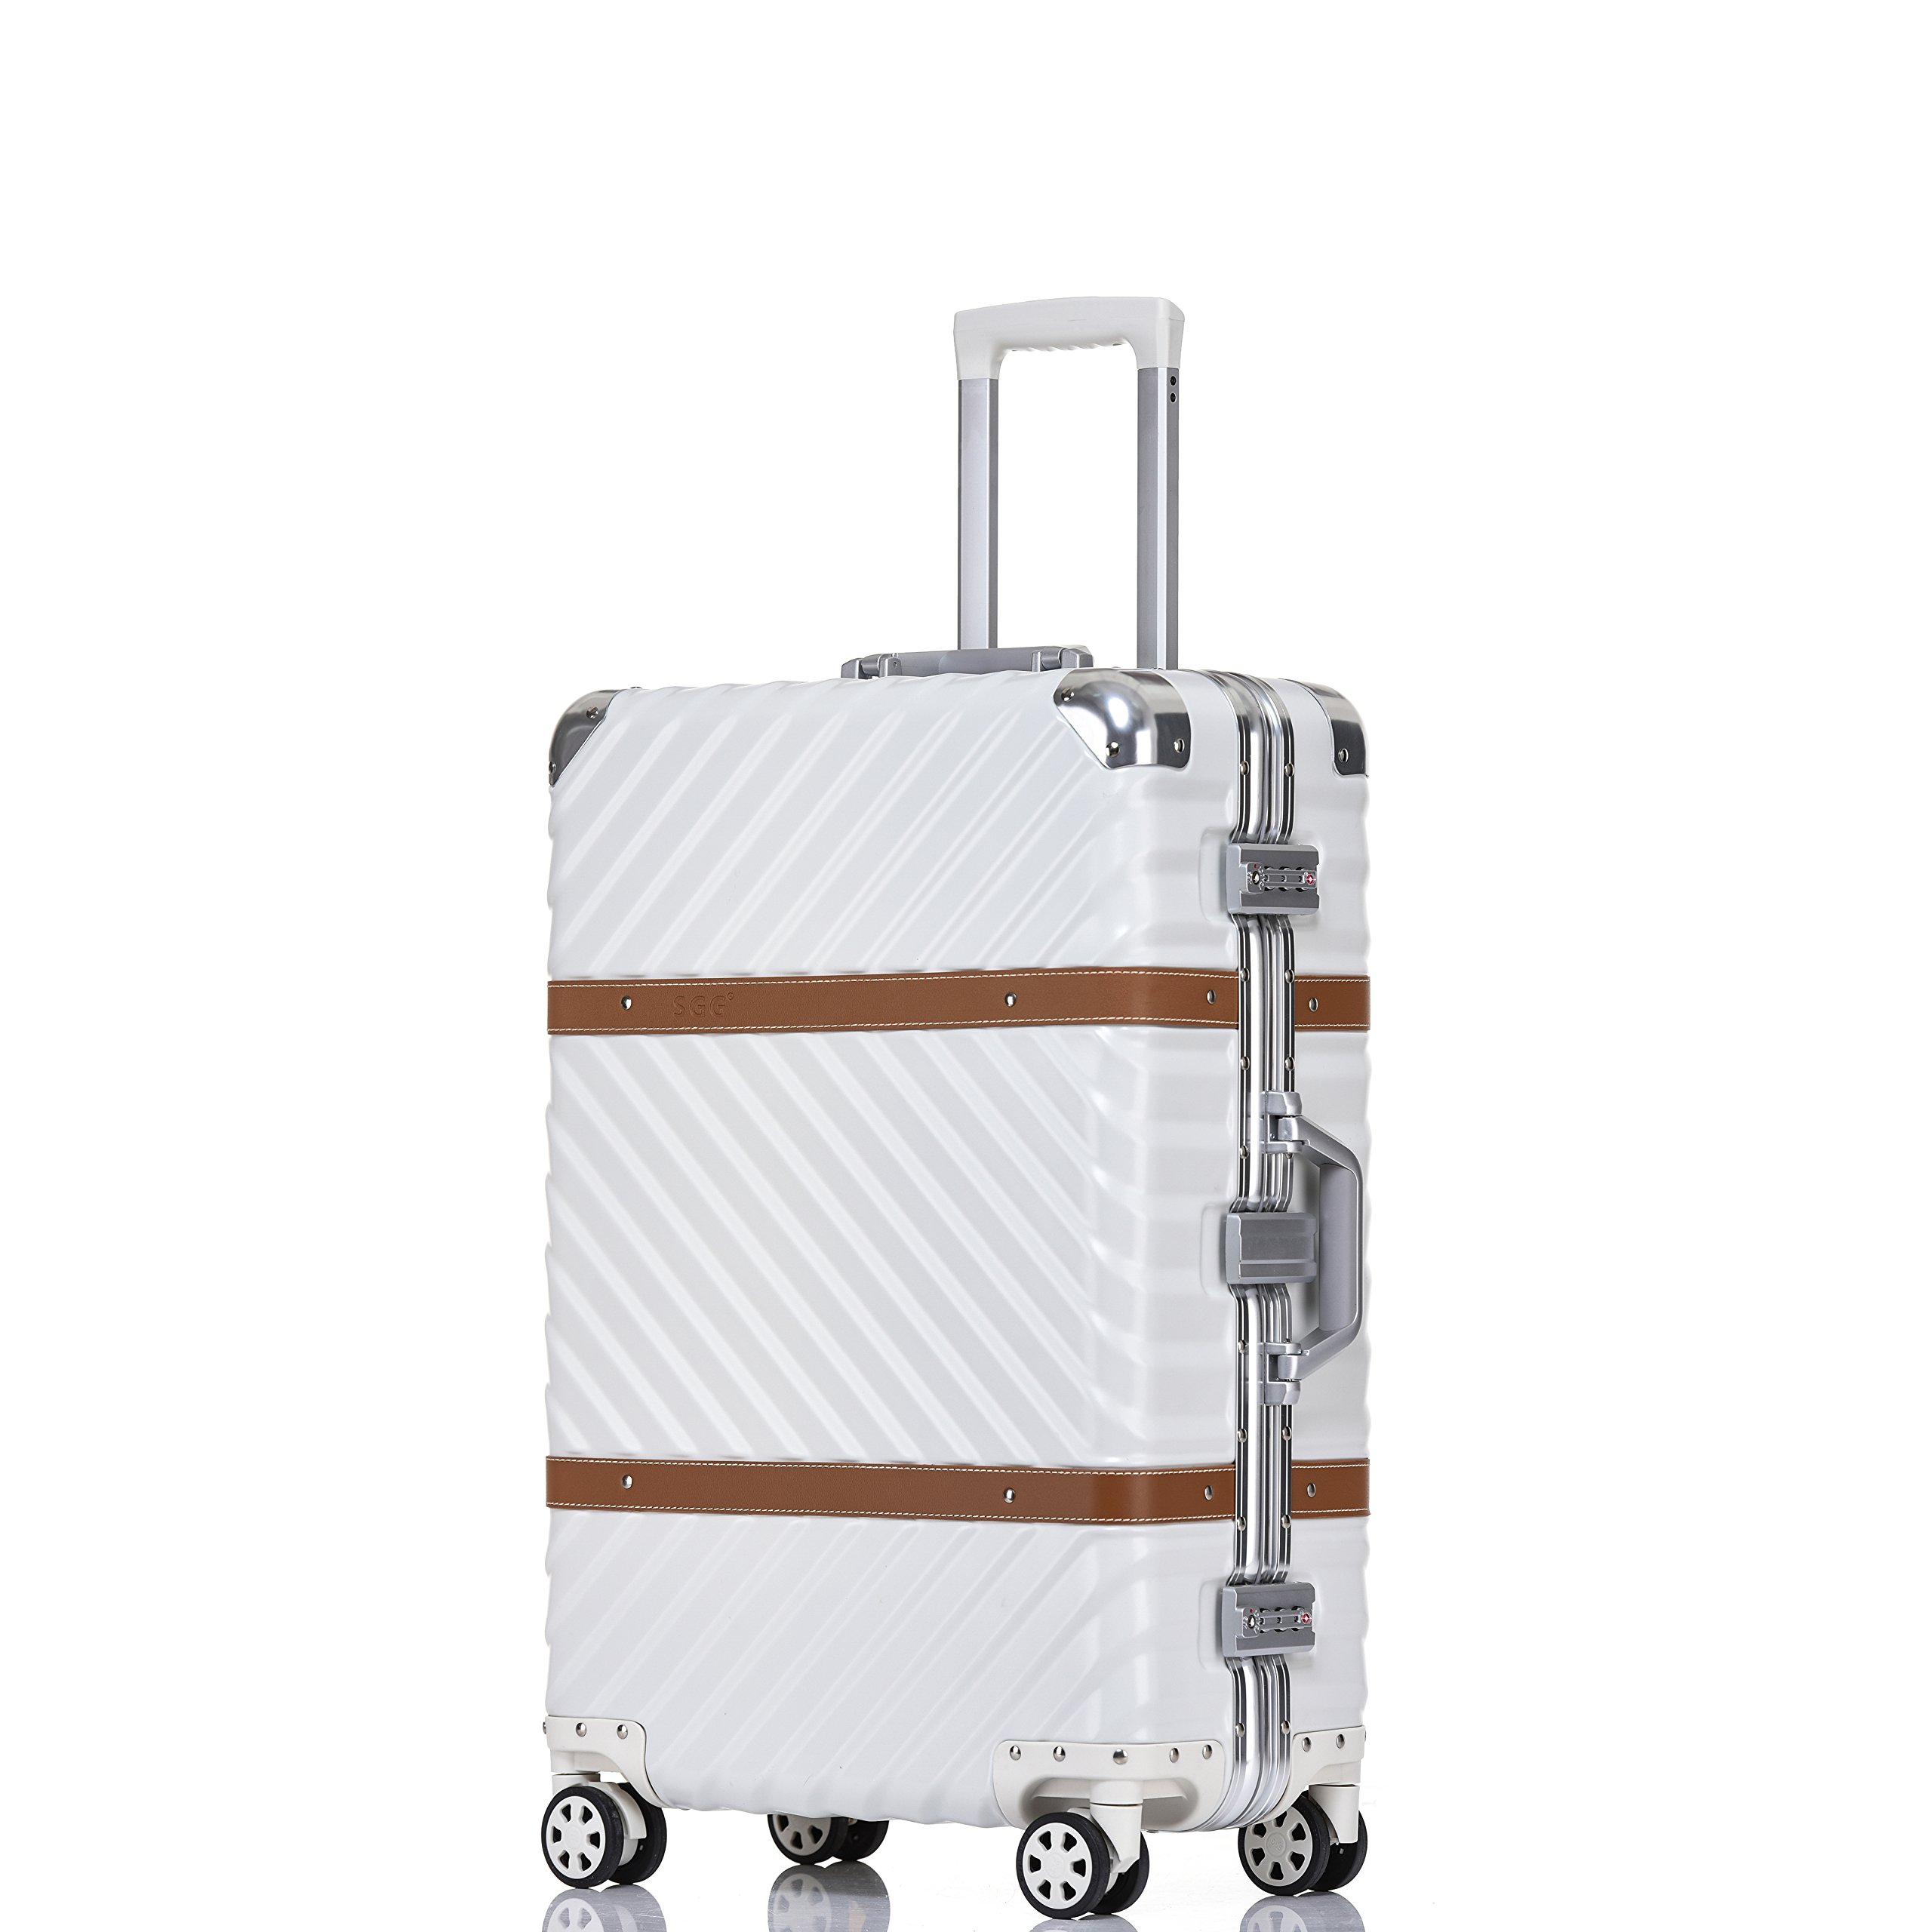 Travel Luggage, Hardside Aluminum Frame Fashion Suitcase with Detachable Spinner Wheels 28 Inch White by Clothink